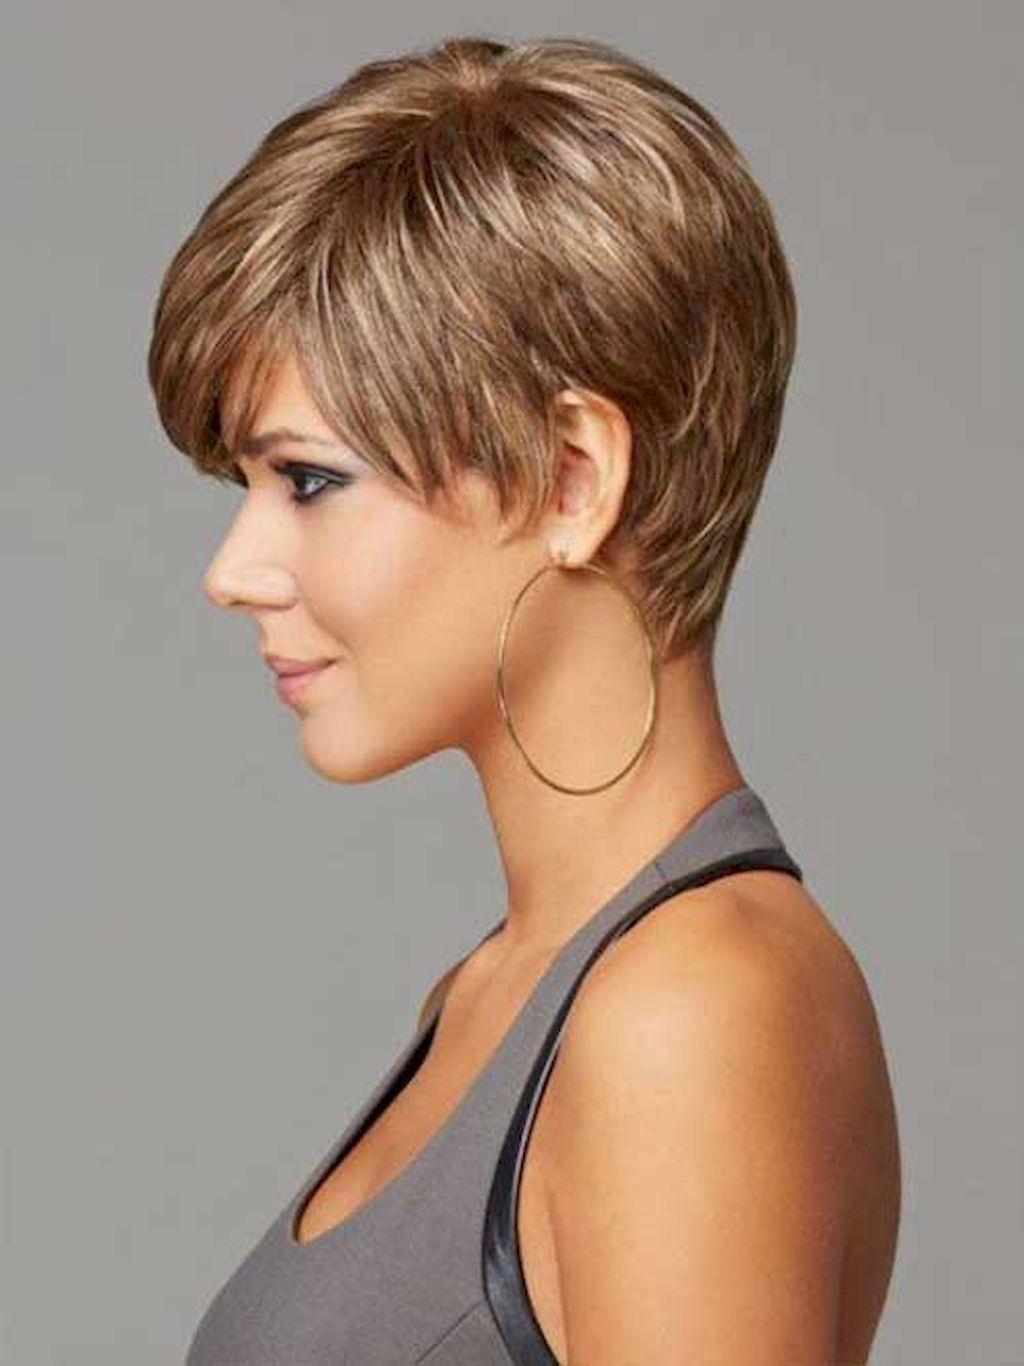 classy short pixie haircuts and hairstyles for thick hair hair